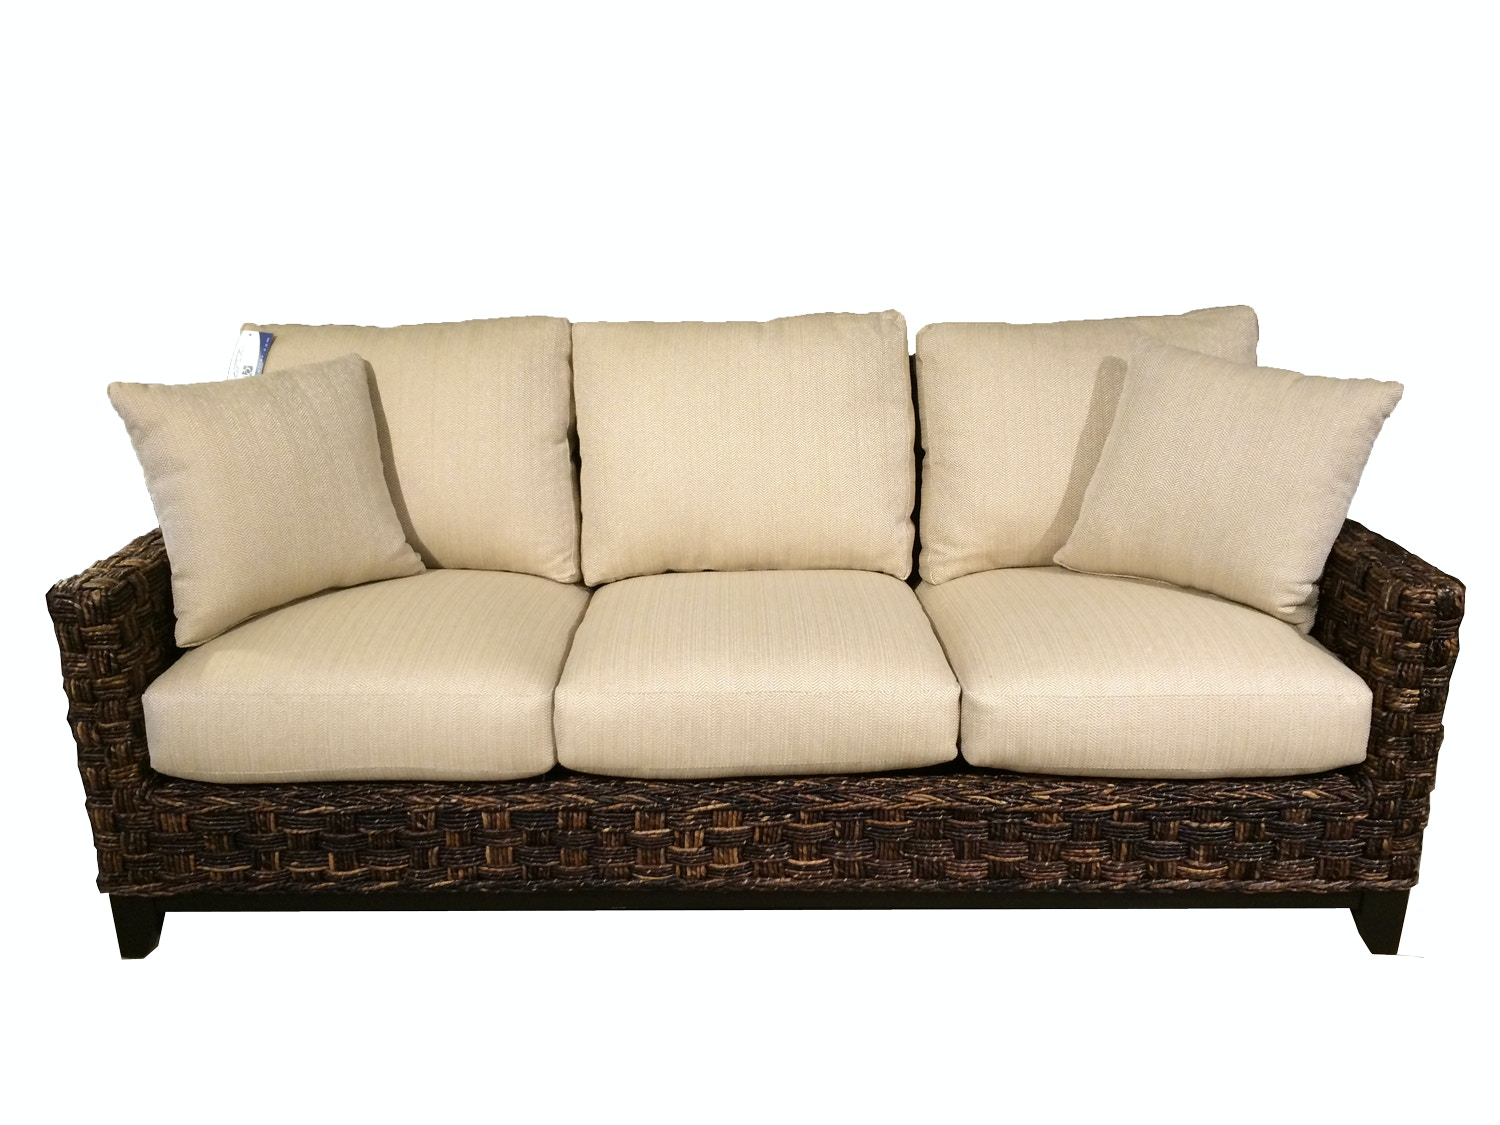 Charmant Braxton Culler Tribeca Sofa With Pillows 53213